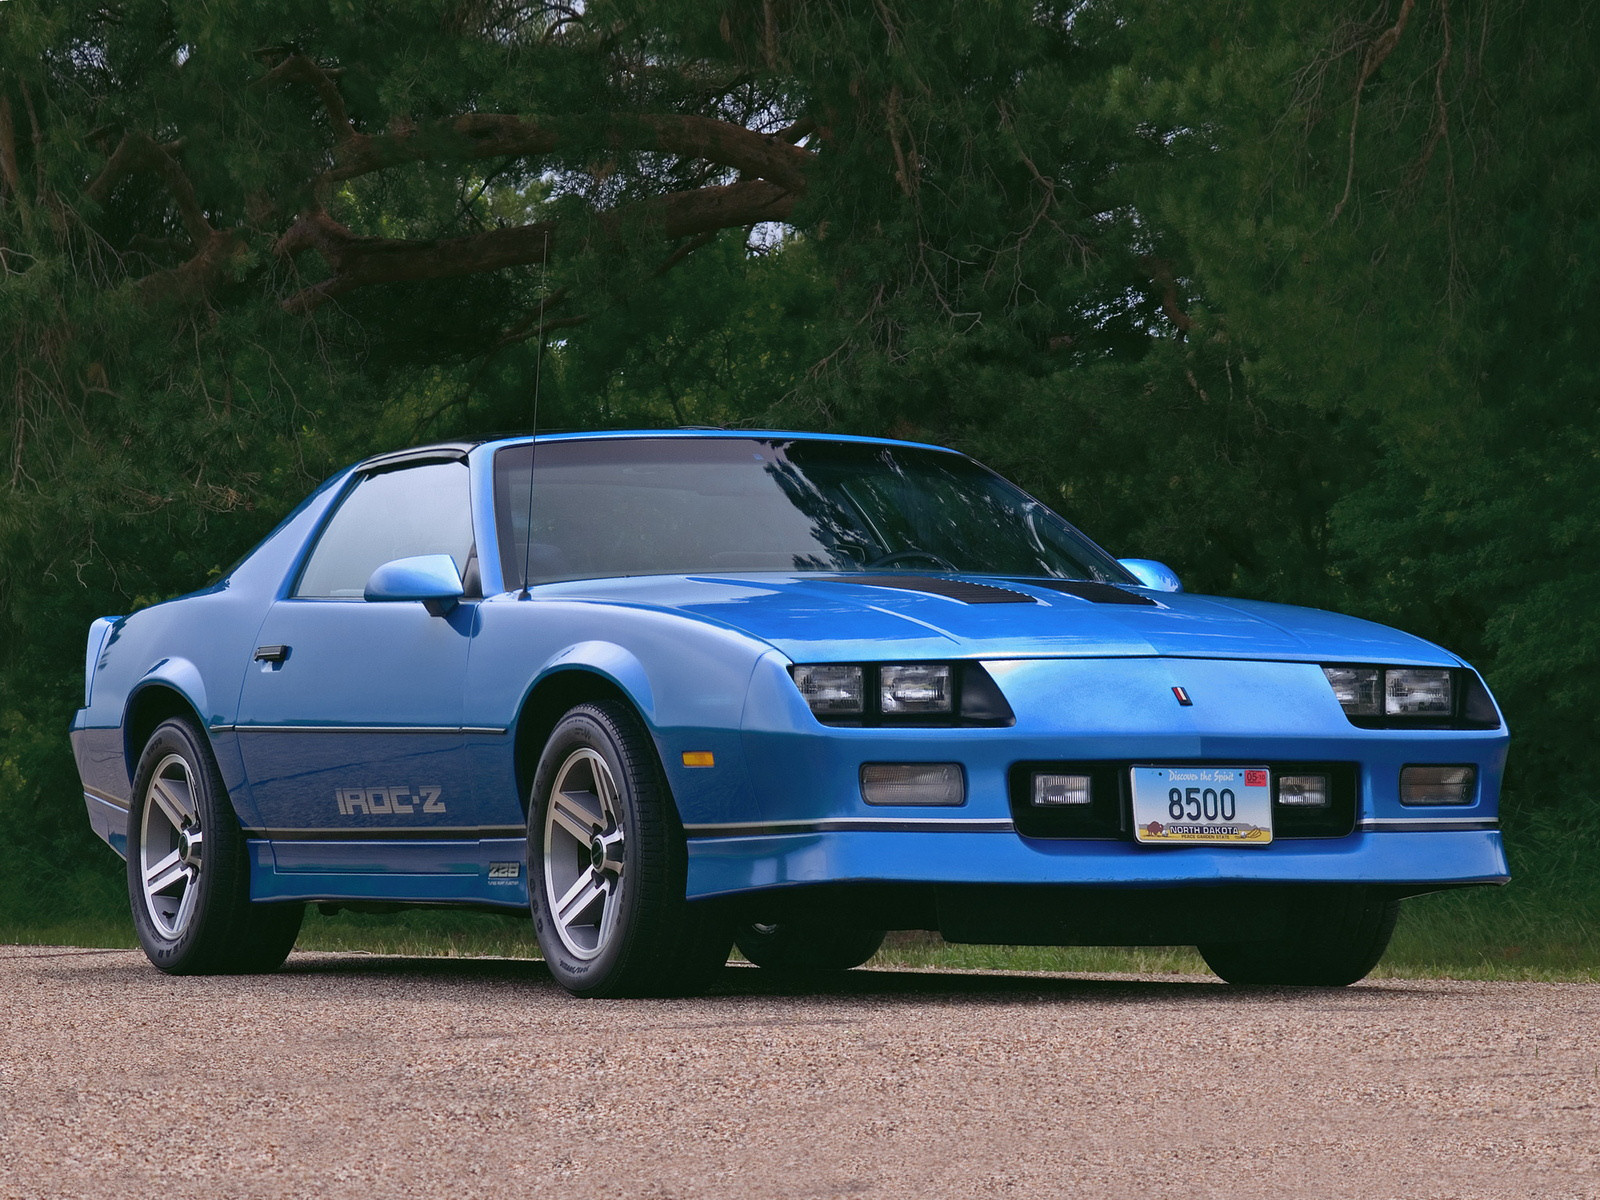 1985 Chevrolet Camaro Iroc Z Watch Car Online